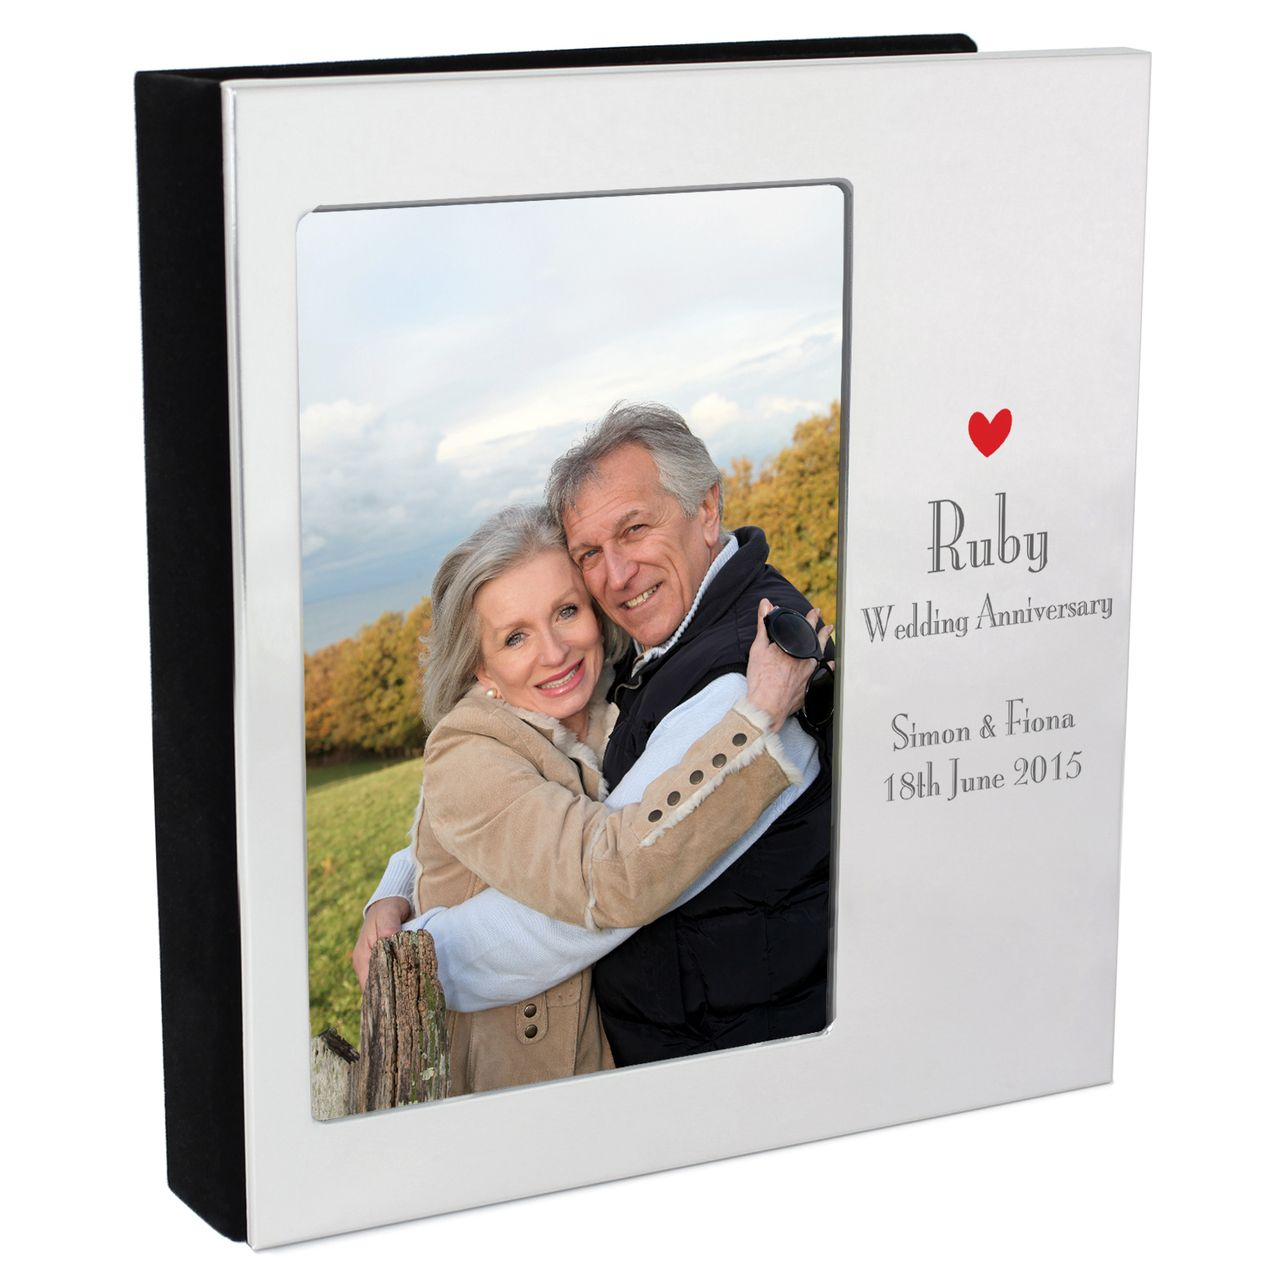 Personalized Ruby Anniversary Photo Frame Album Anniversary Photos 50th Wedding Anniversary Party Personalized Photo Albums